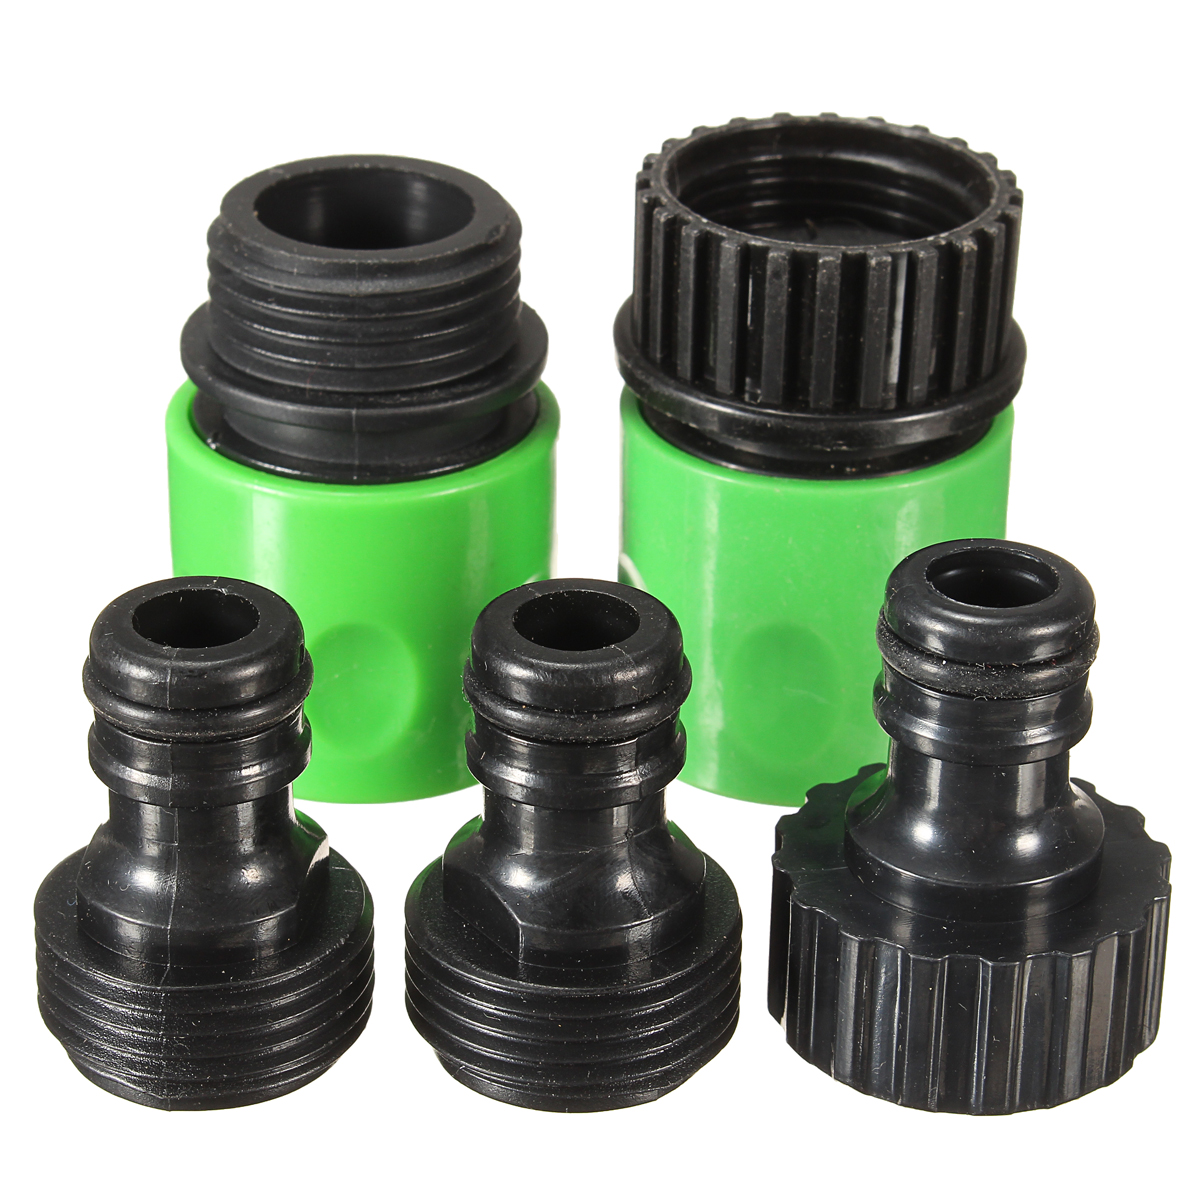 5pcs Rubber Hose Water Faucet Tap Adapter Rubber Nozzle